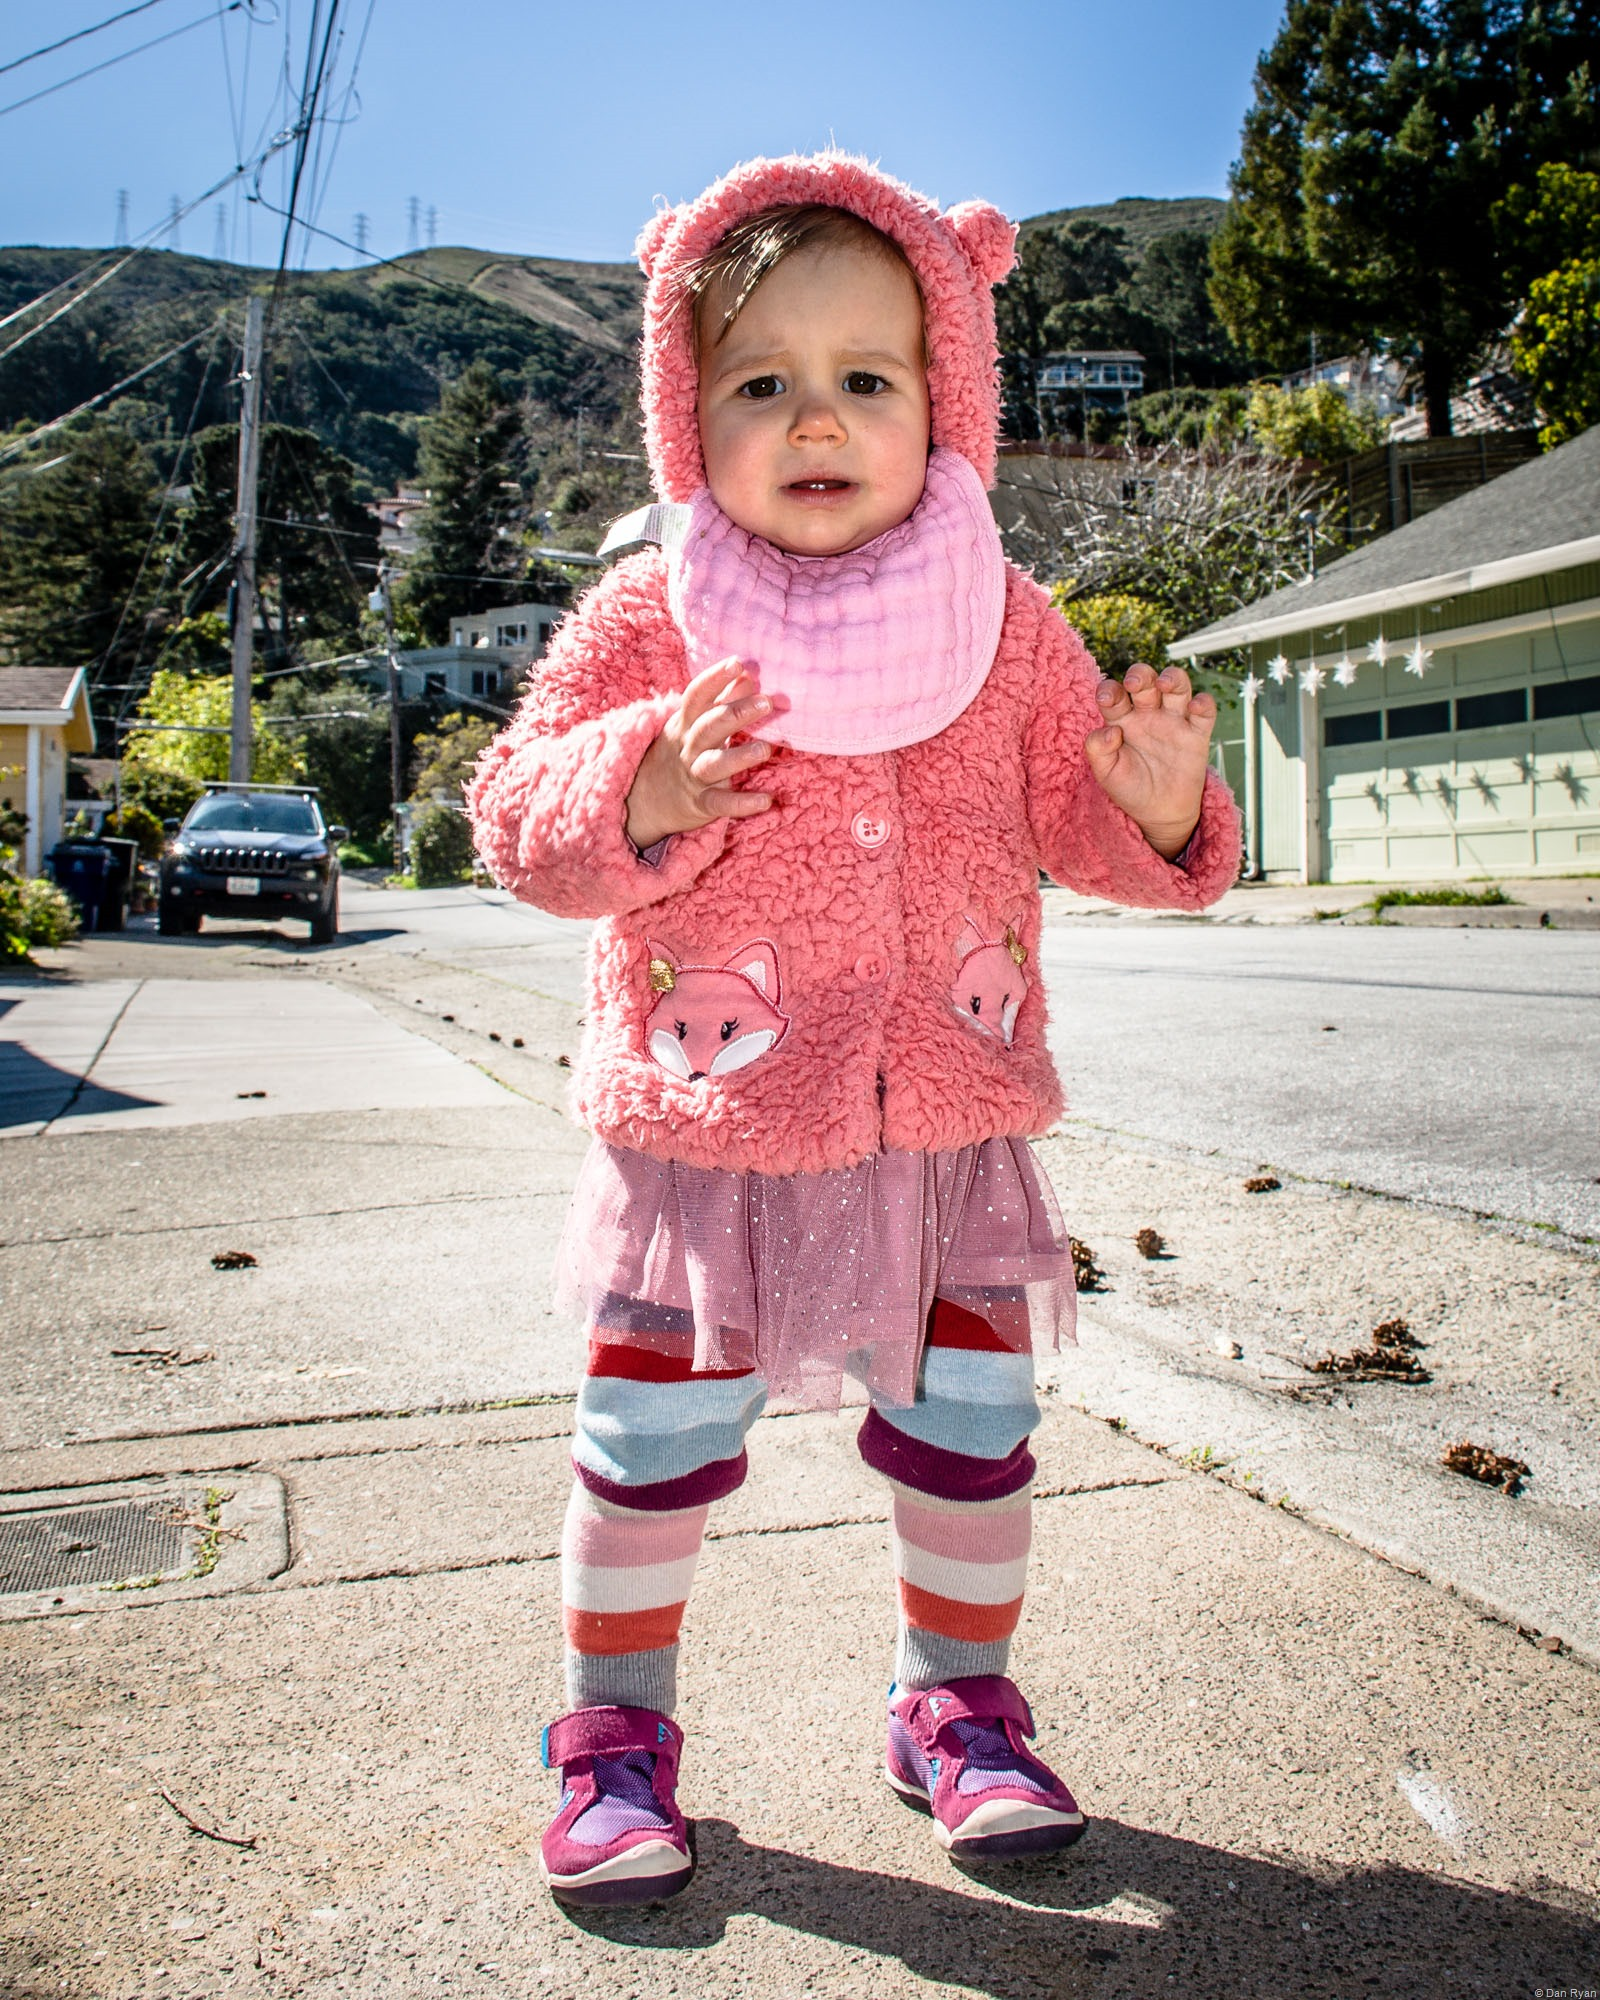 an unhappy toddler in pink